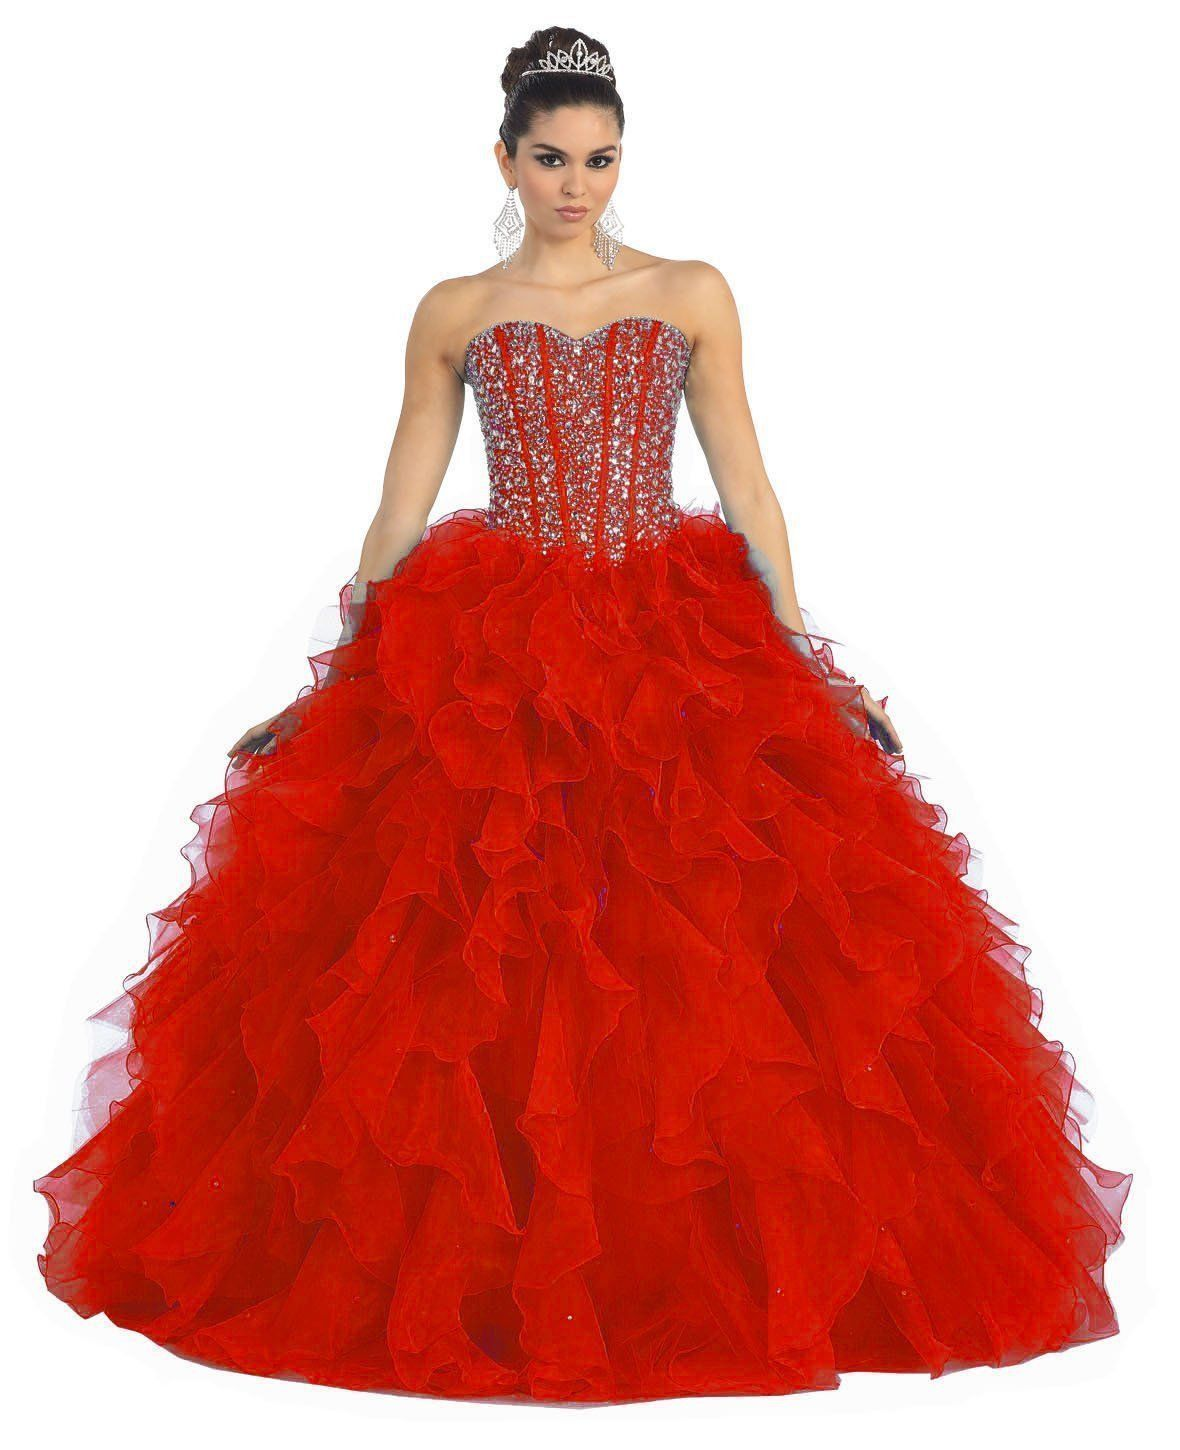 Quinceanera quinceanera long ballgown formal prom dresses in